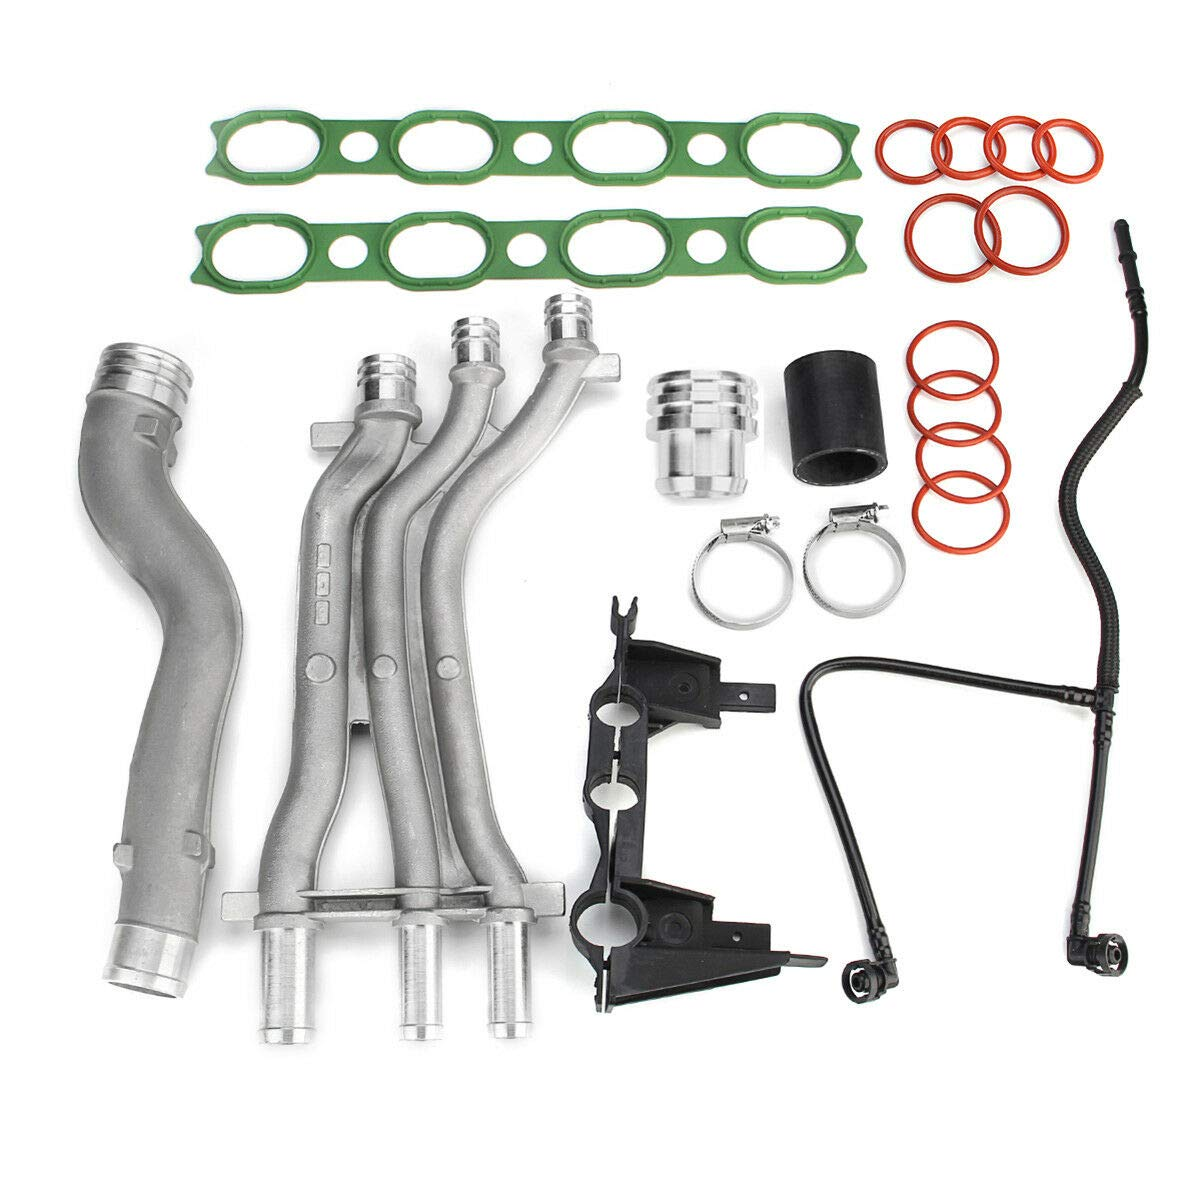 Engine Coolant Pipe Upgrade Kit for 2003-2006 Porsche Cayenne Turbo//Turbo S 4.5 V8